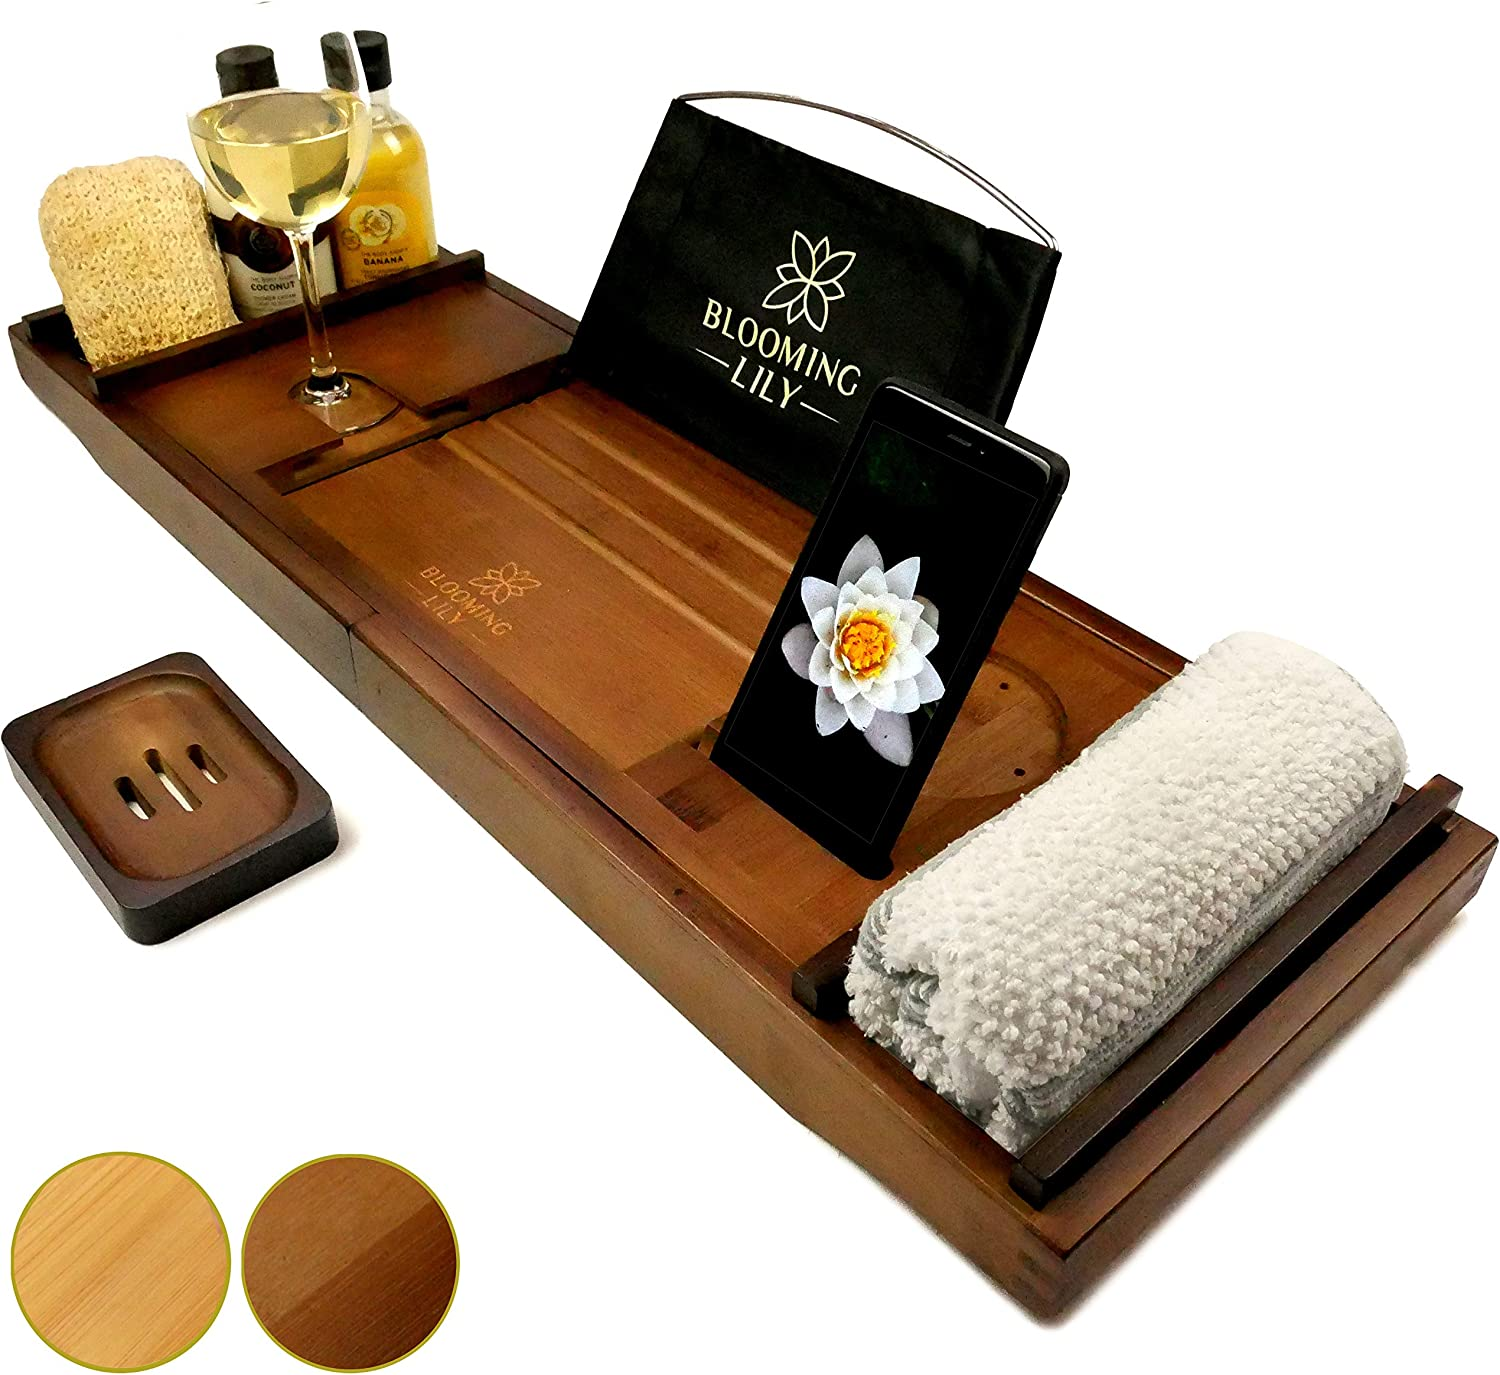 Blooming Lily Bathtub Tray - Sturdily Designed Bath Caddy with Wine Glass Holder, Ipad Stand and More Suitable for Most Baths (Brown): Kitchen & Dining